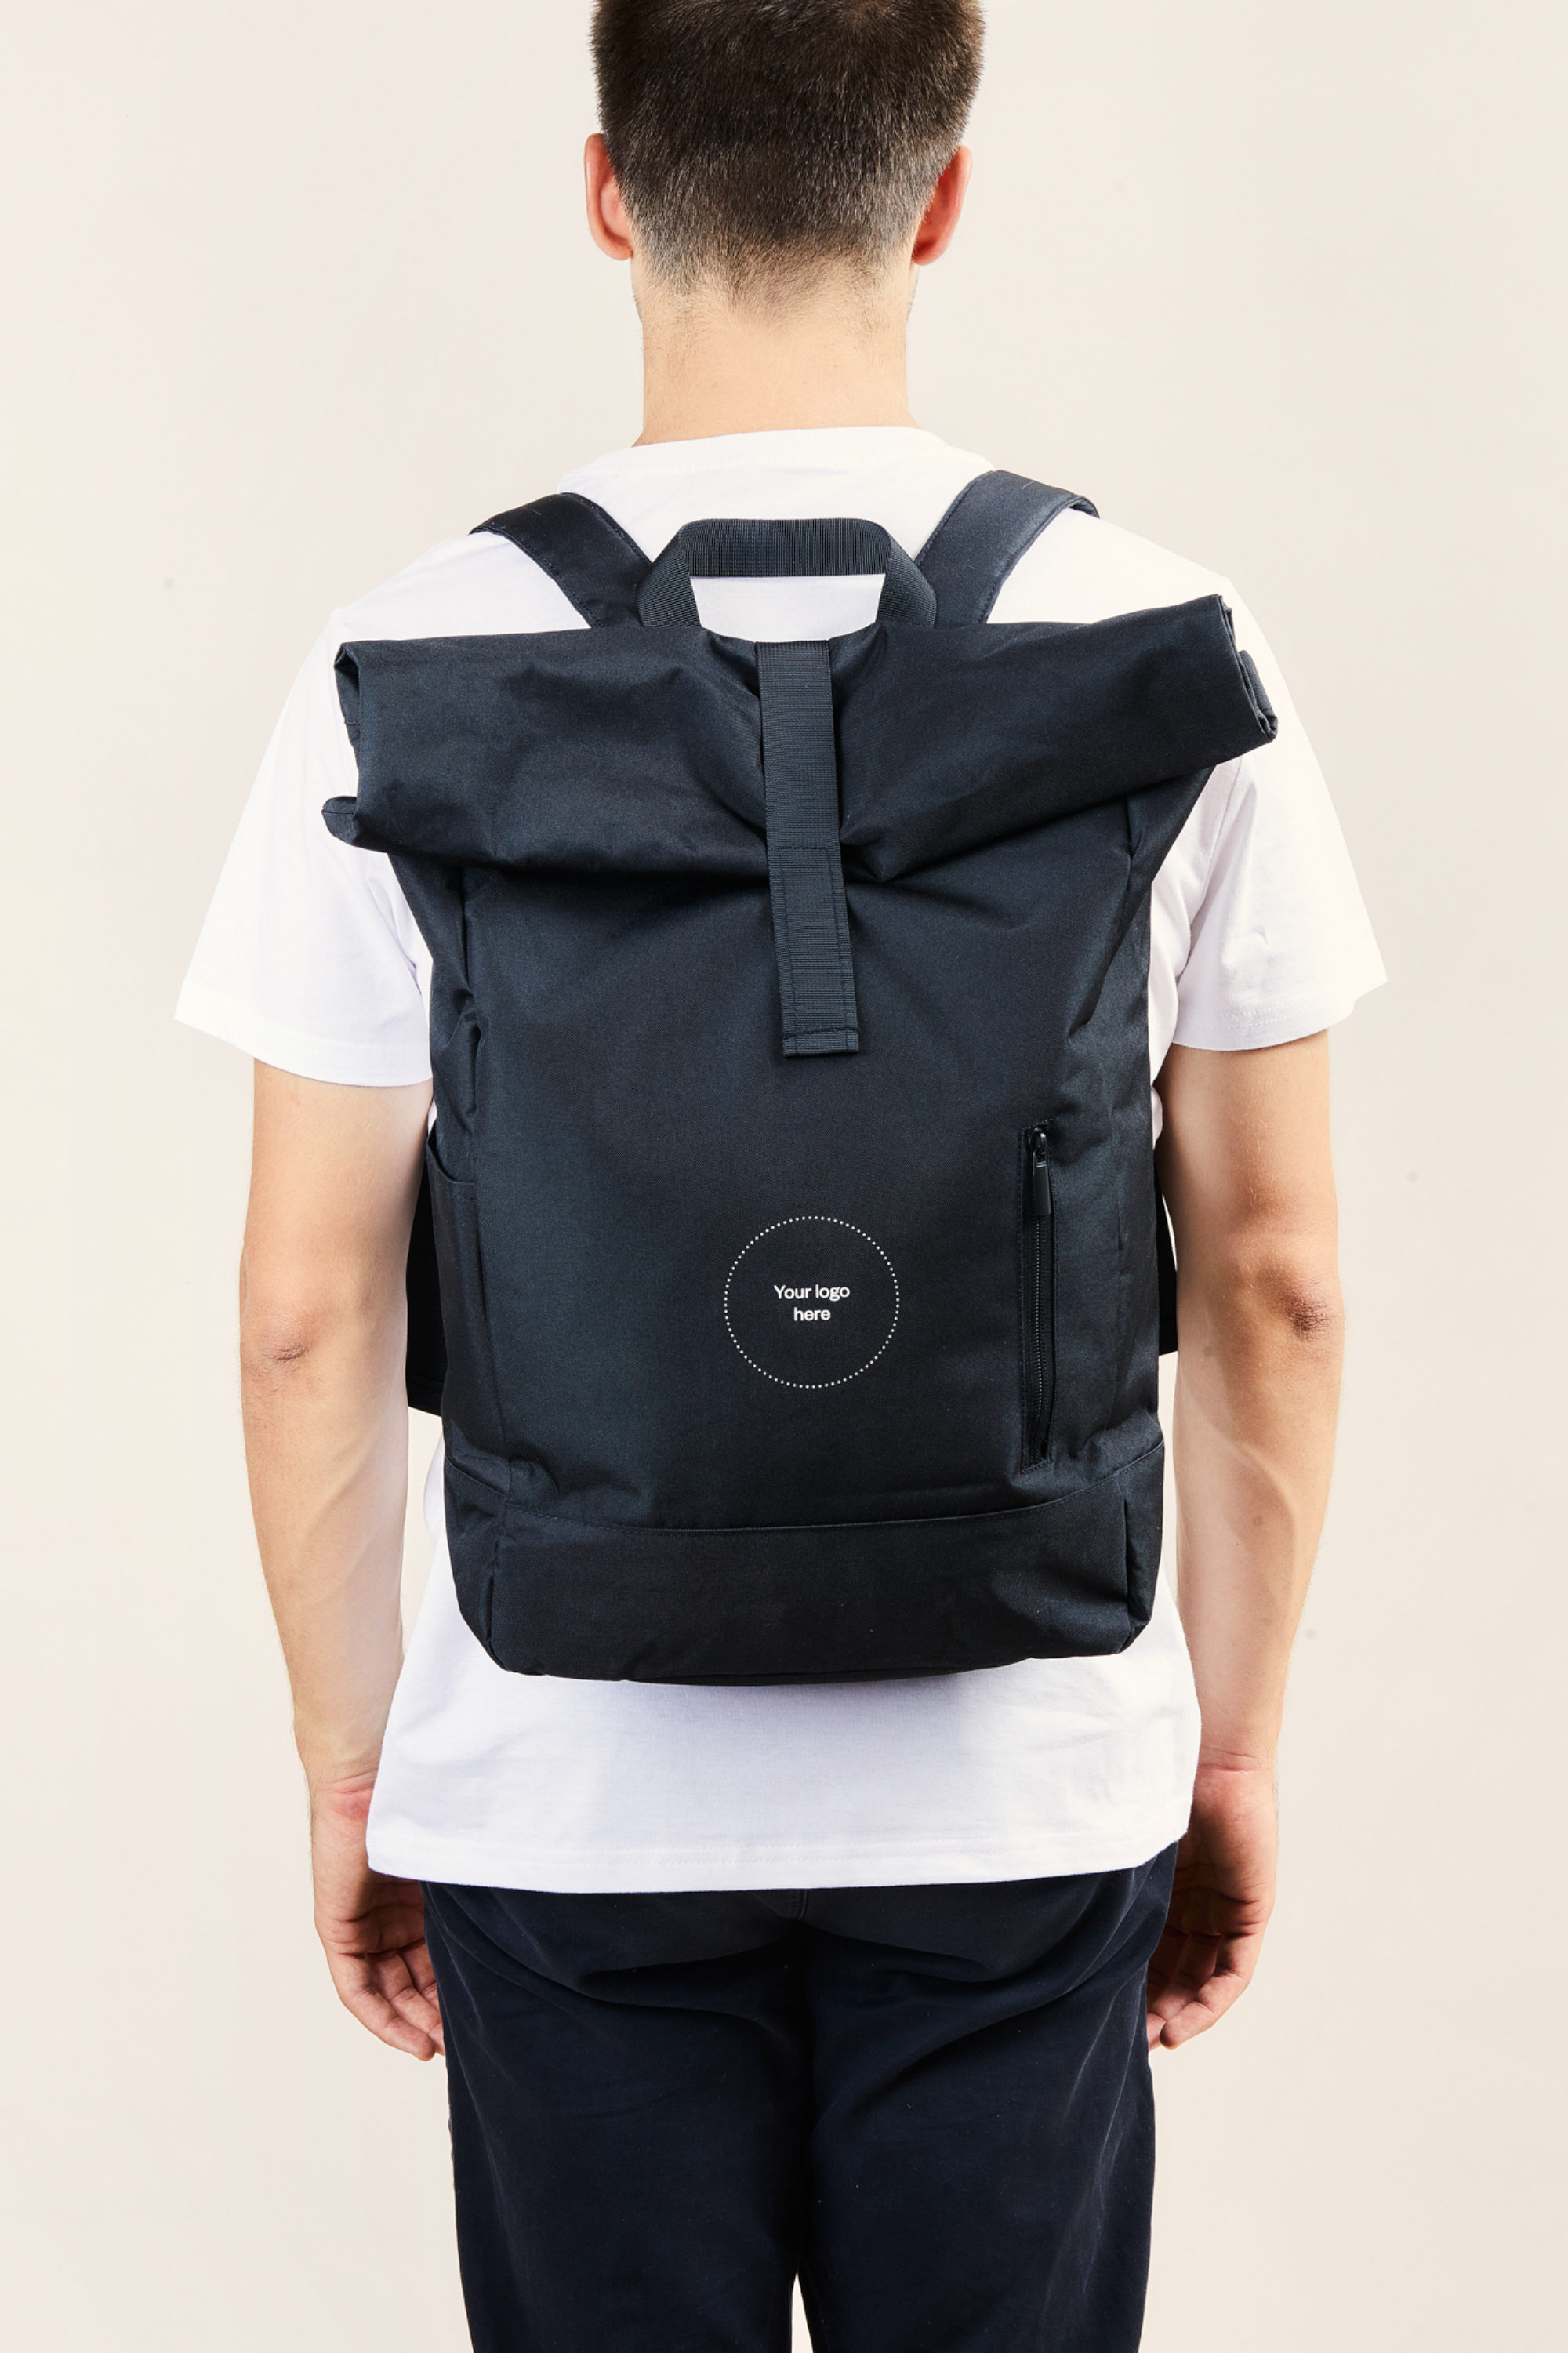 Branded recycled corporate backpack - Merchery